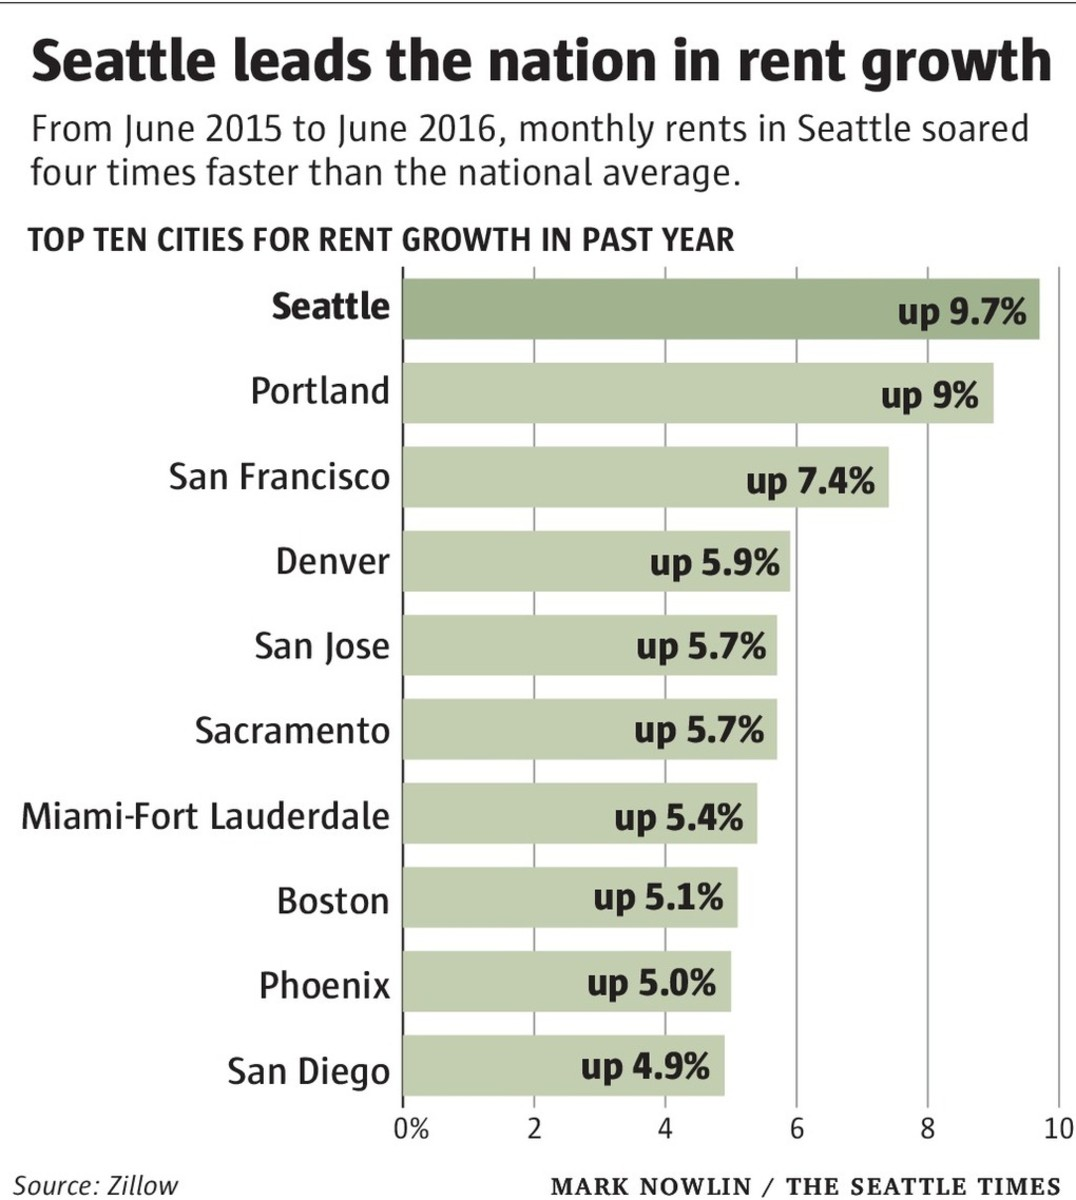 Seattle Is Number 1 Ranked Nationwide in Rental Increases